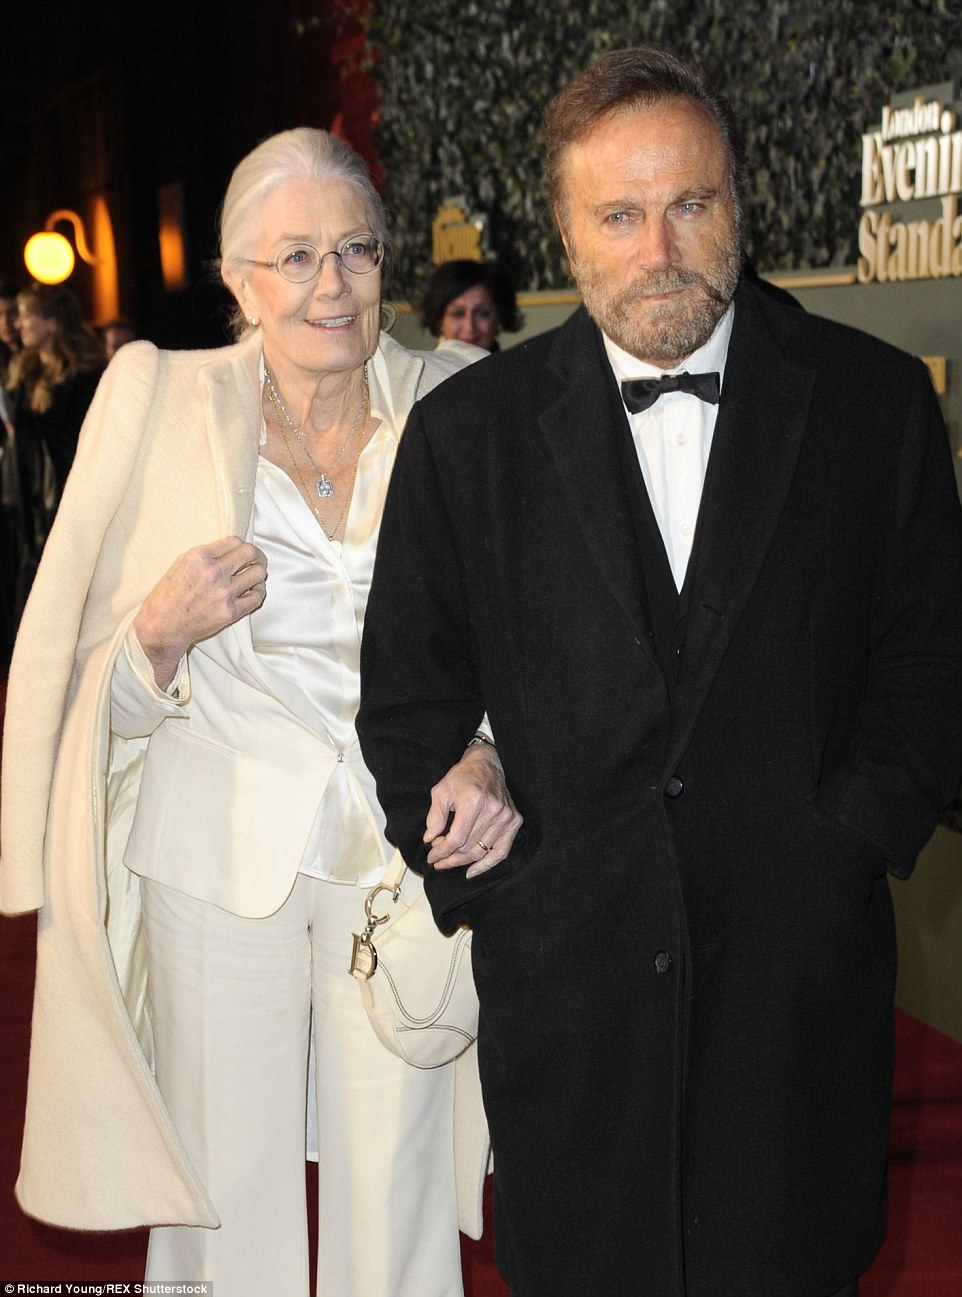 Veteran actress Vanessa Redgrave arrived at the awards ceremony with husband Franco Nero in a chic cream silk trouser suit and matching coat. The Natasha Richardson Best actress award, which went to Nicole Kidman, was named after her late daughter who died in a tragic skiing accident